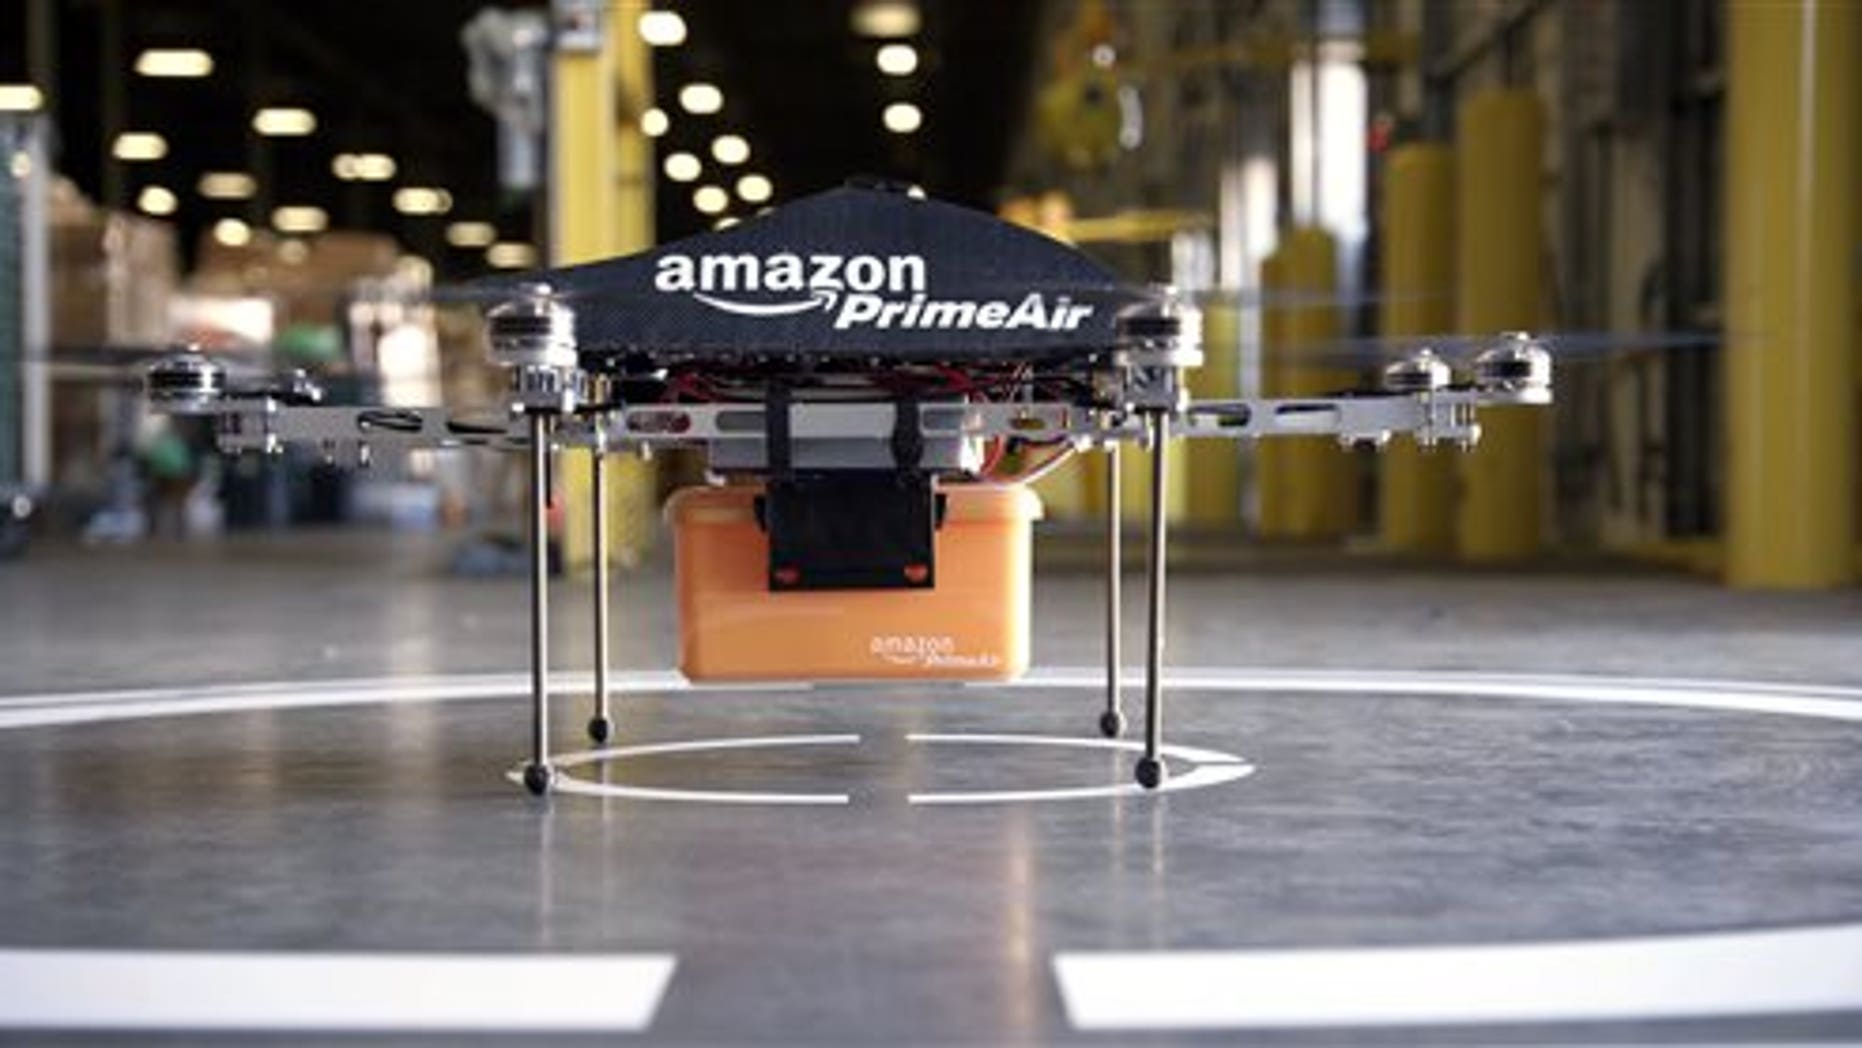 The so-called Prime Air unmanned aircraft project that Amazon is working on in its research and development labs.